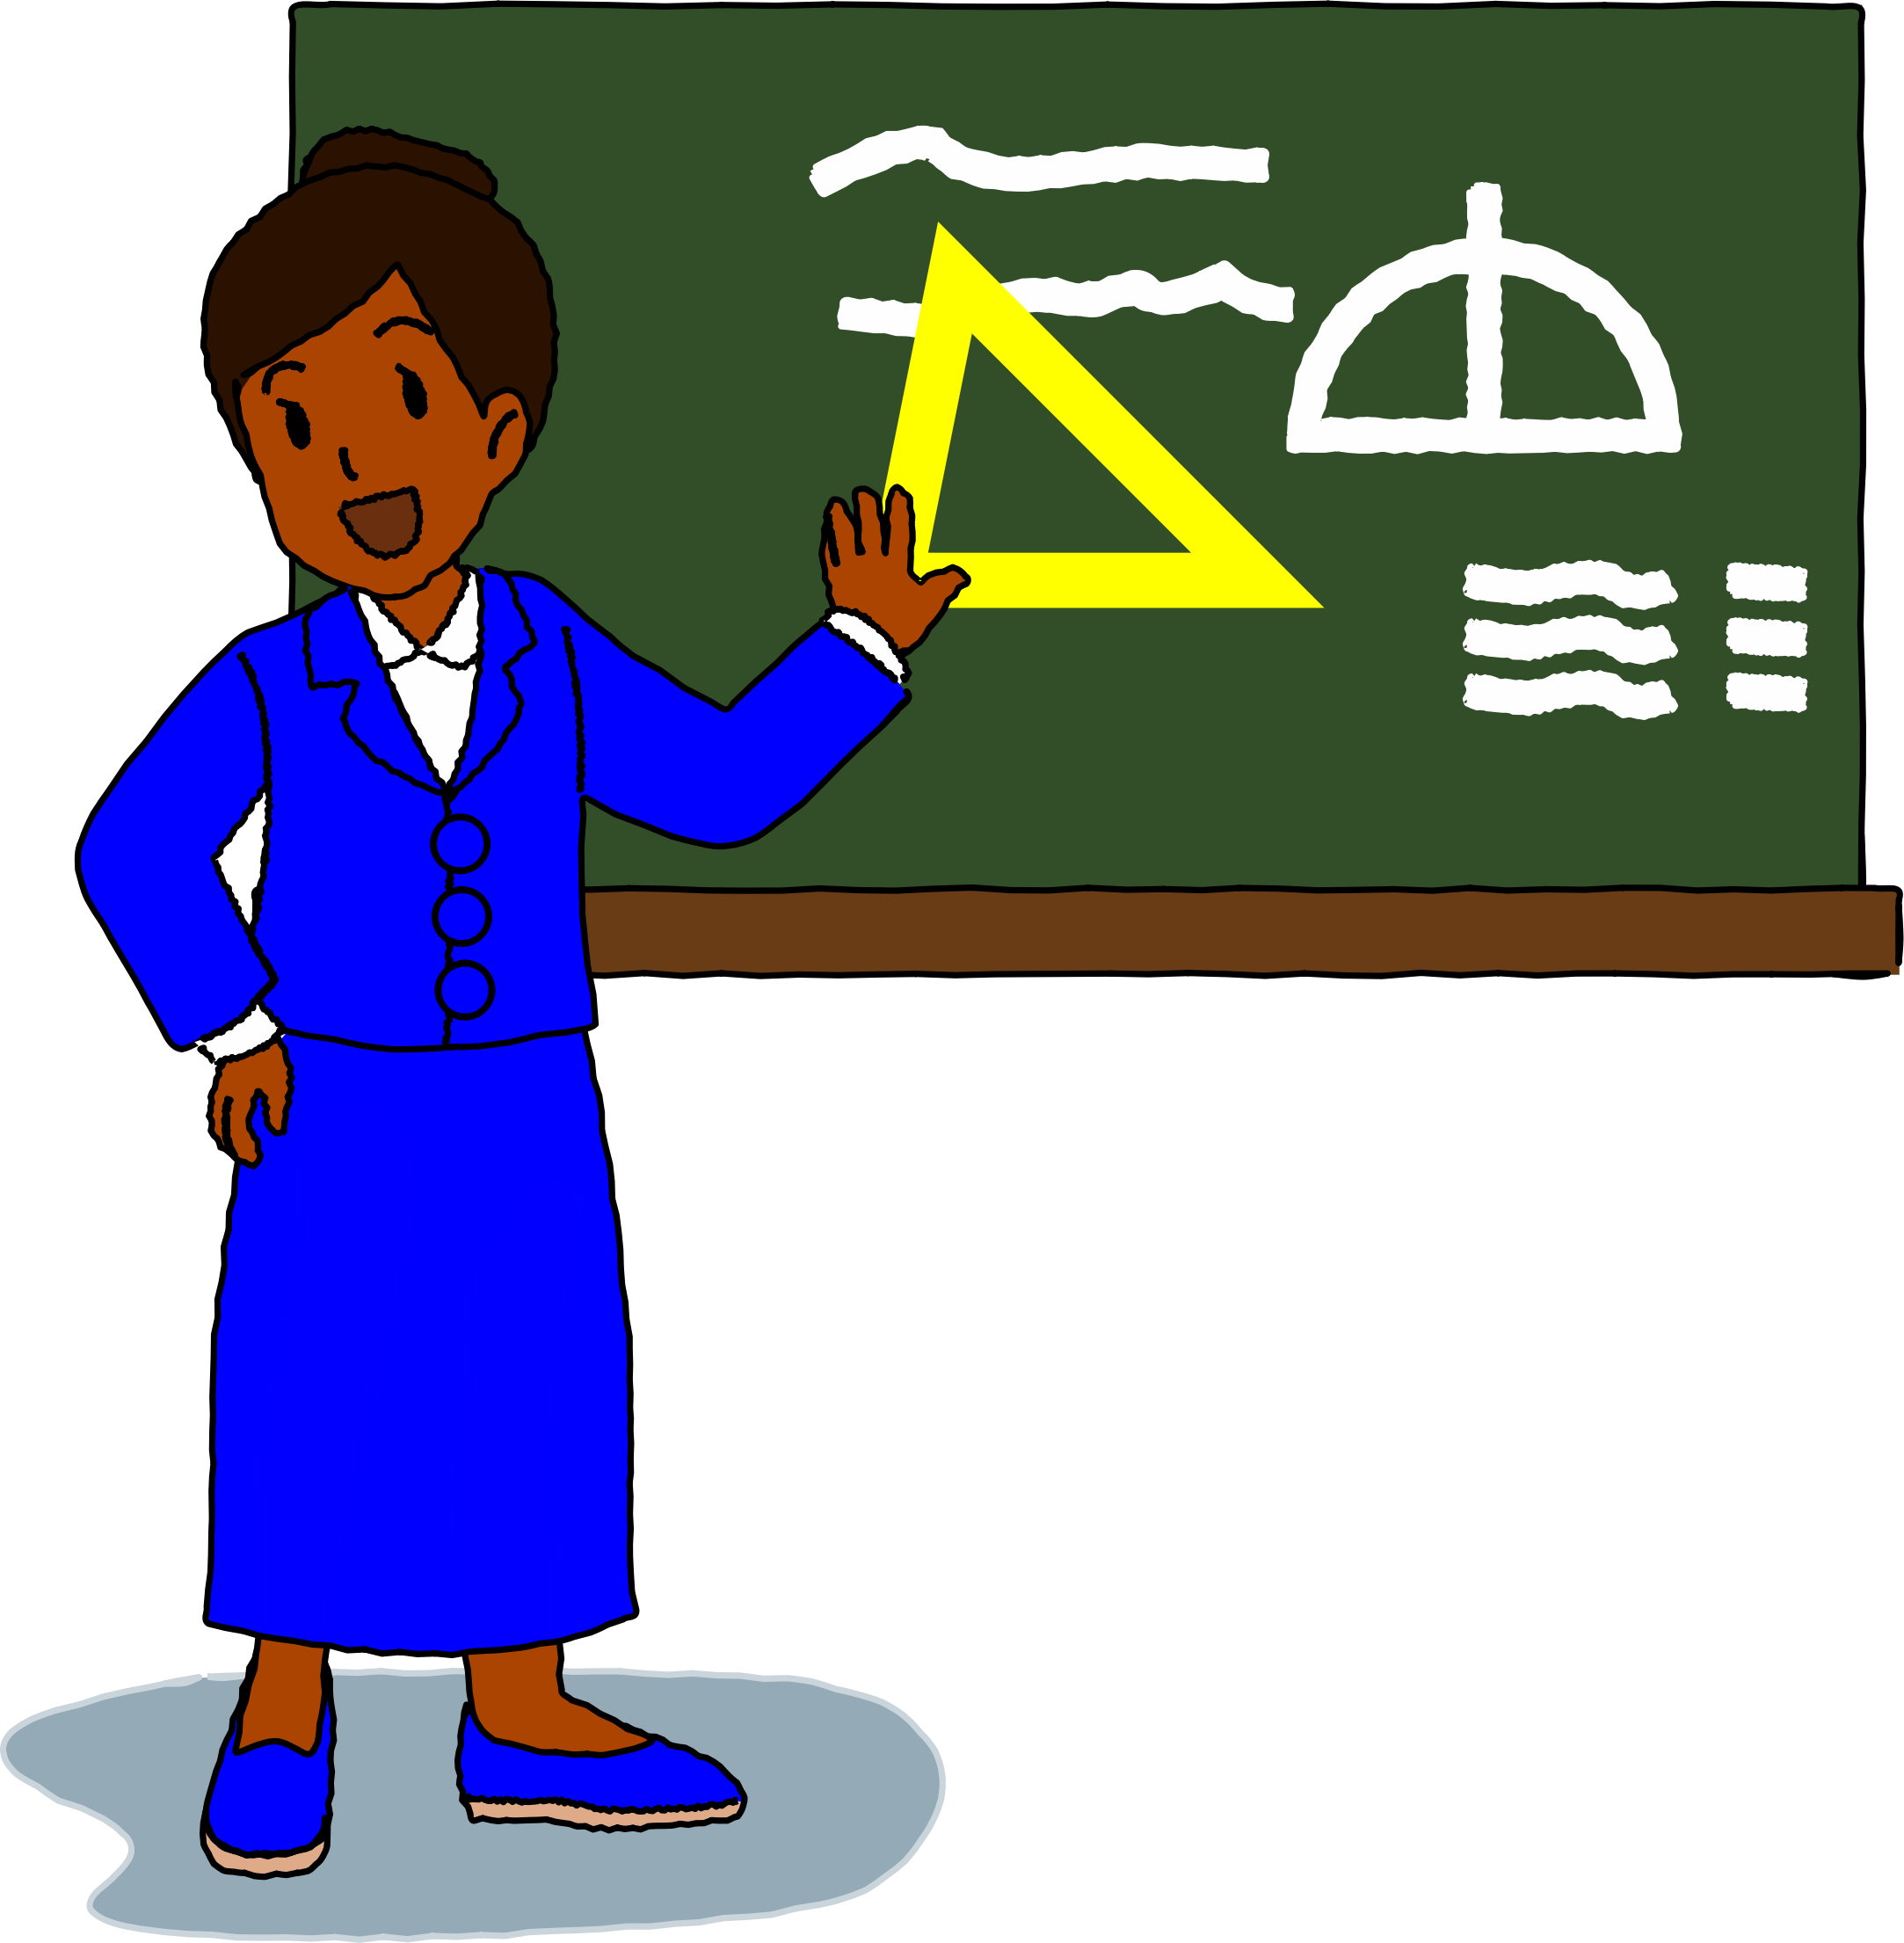 Geometry clipart geometry teacher. Is not a good